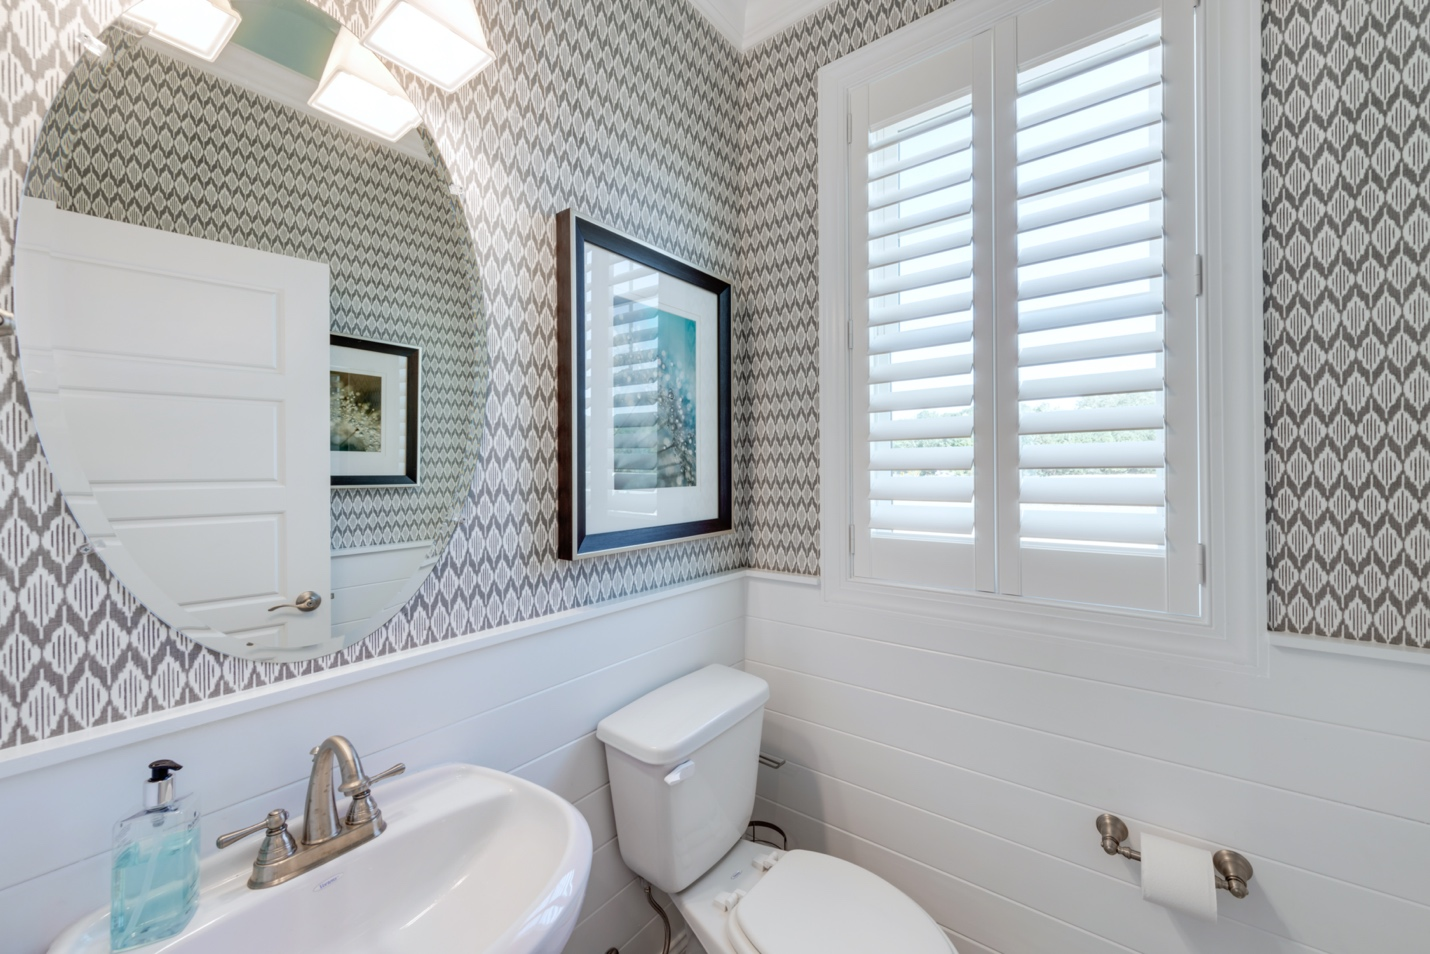 A picture containing bathroom, indoor, wall, window Description automatically generated